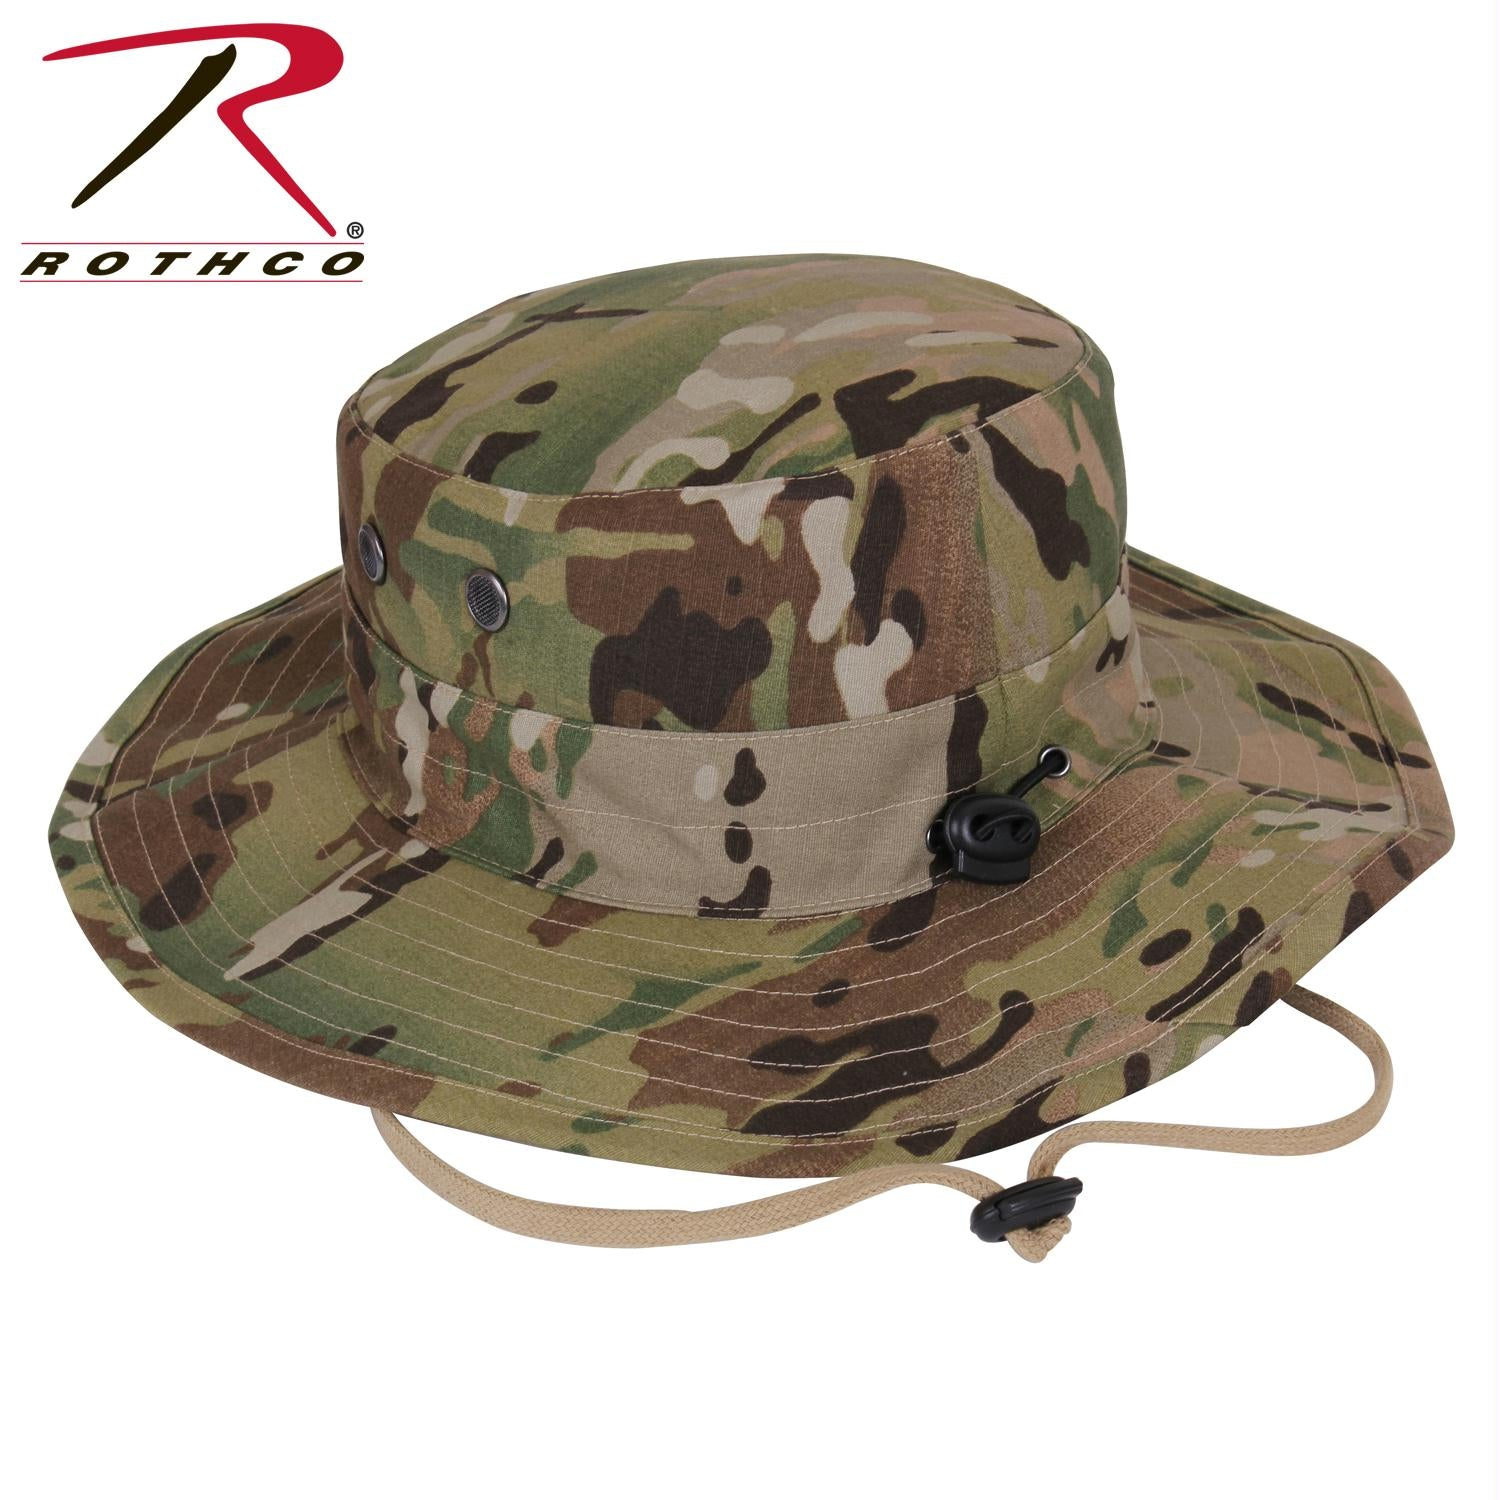 Rothco Adjustable Boonie Hat - MultiCam / One Size